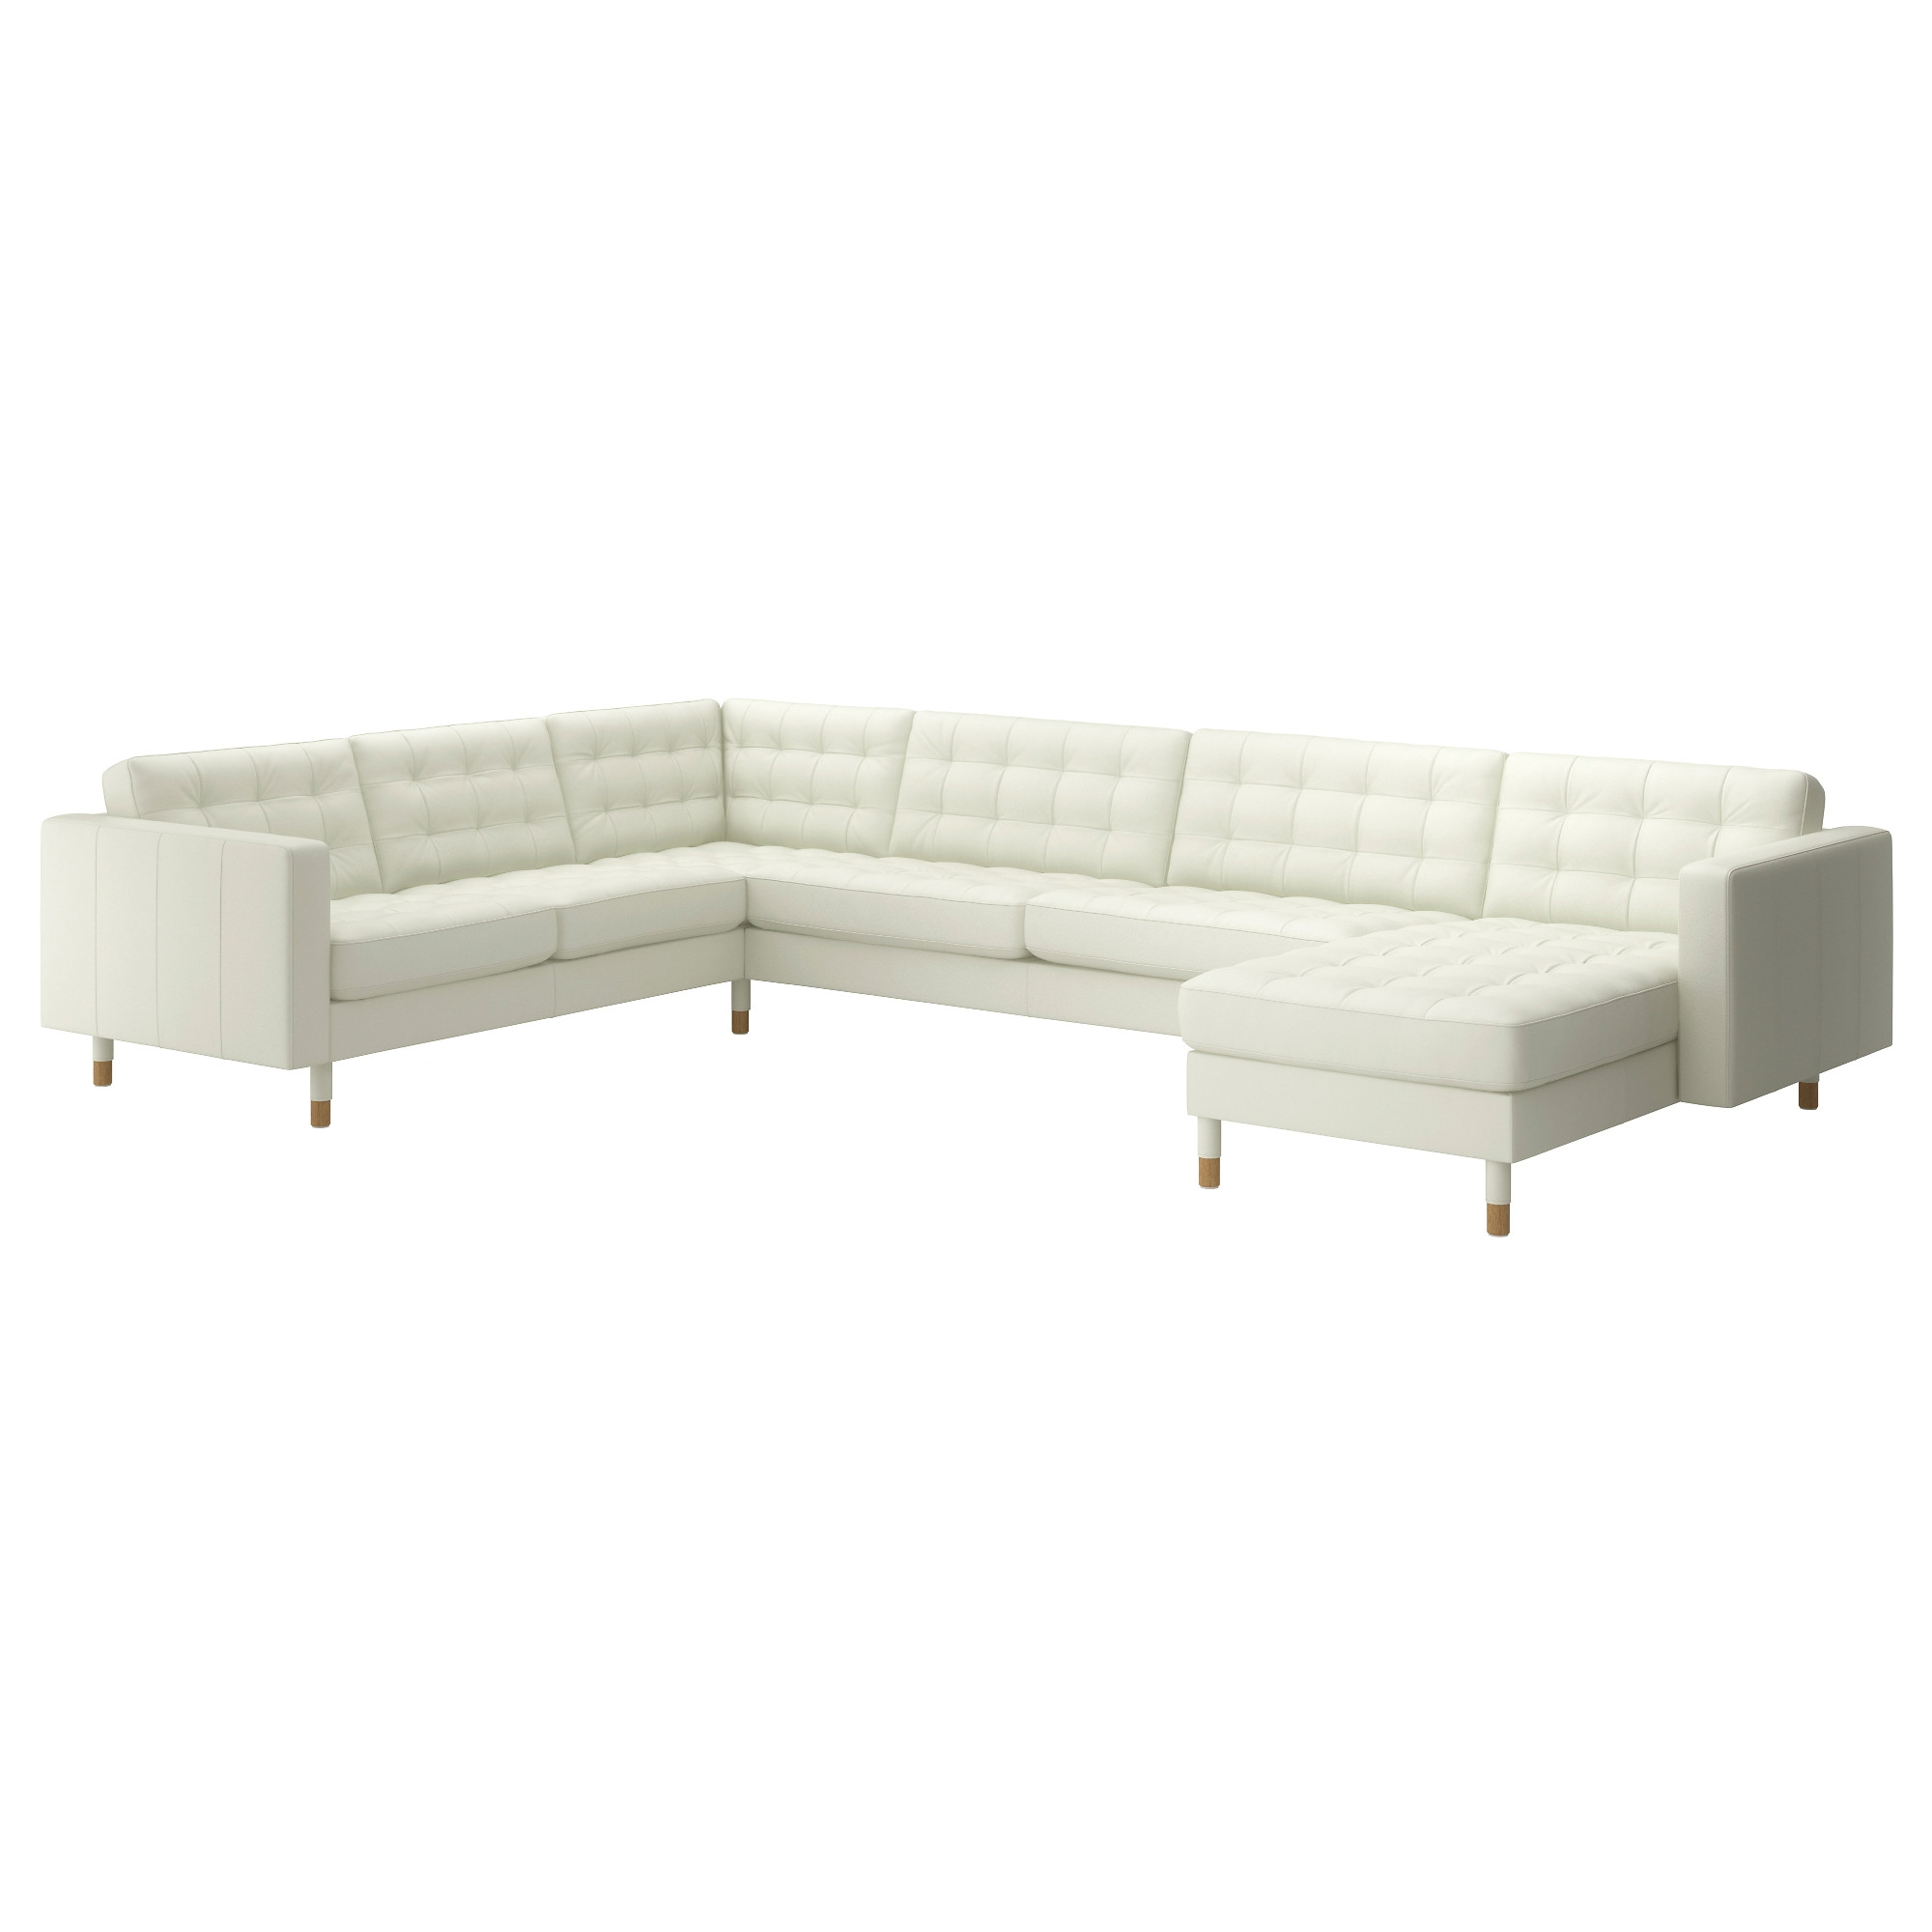 Leather Faux Leather Couches Chairs Ottomans Ikea For White Sofa Chairs (Image 8 of 15)